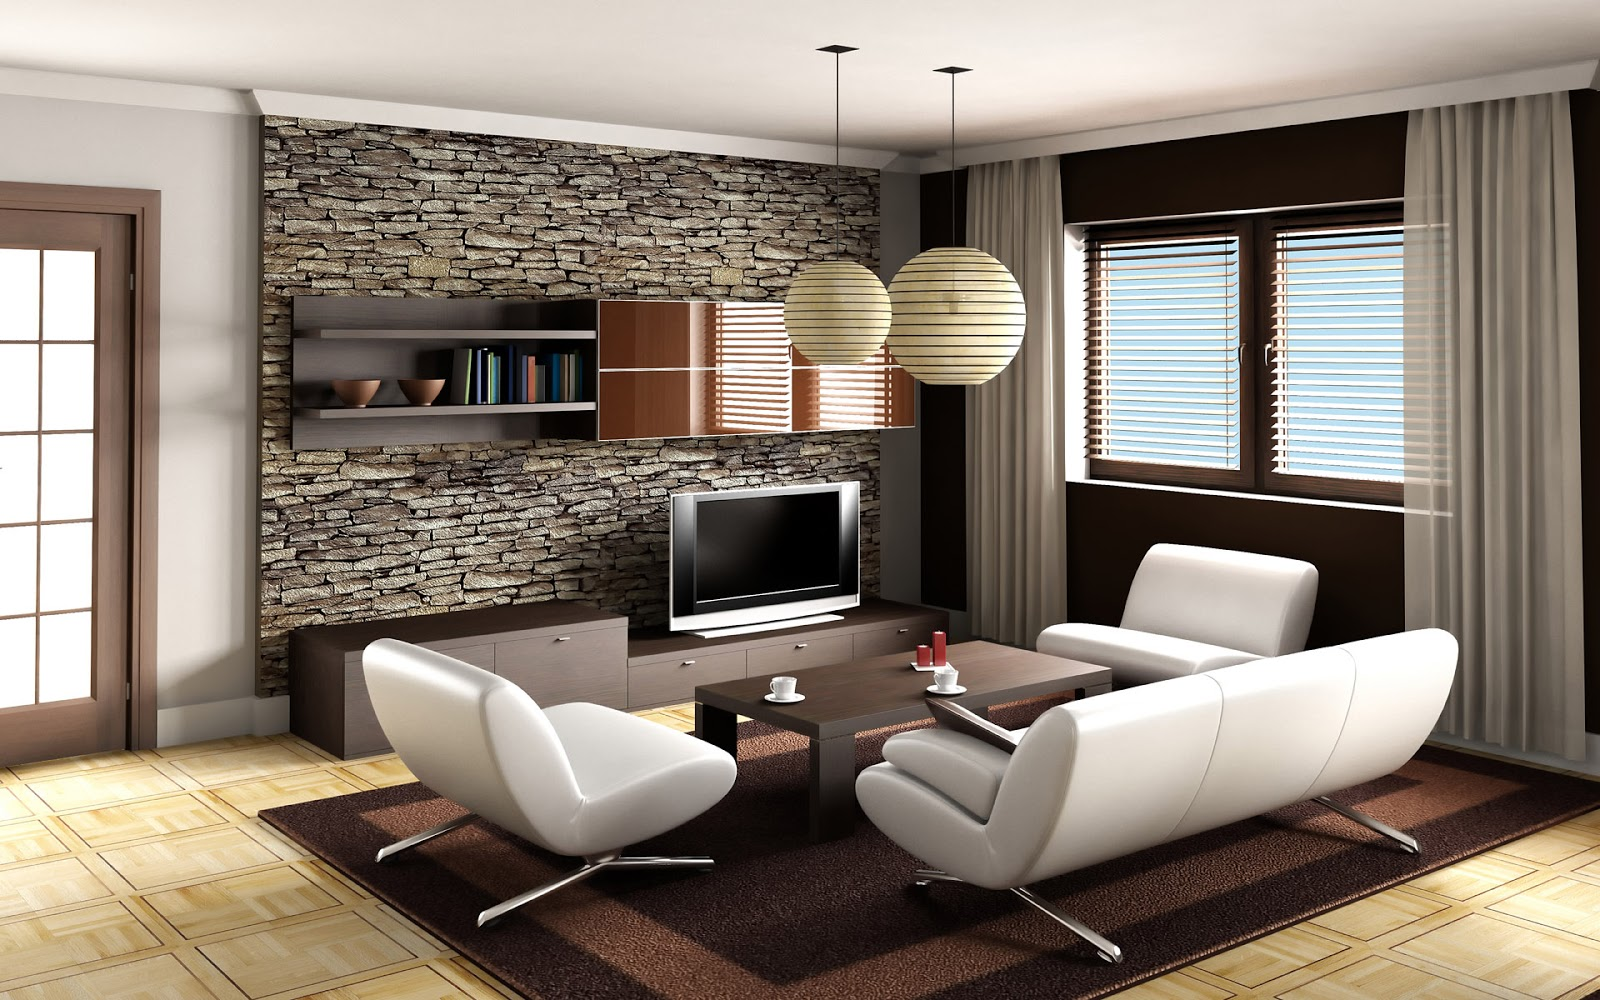 Arrangement of luxury living room ideas dream house Simple decorating ideas for living room